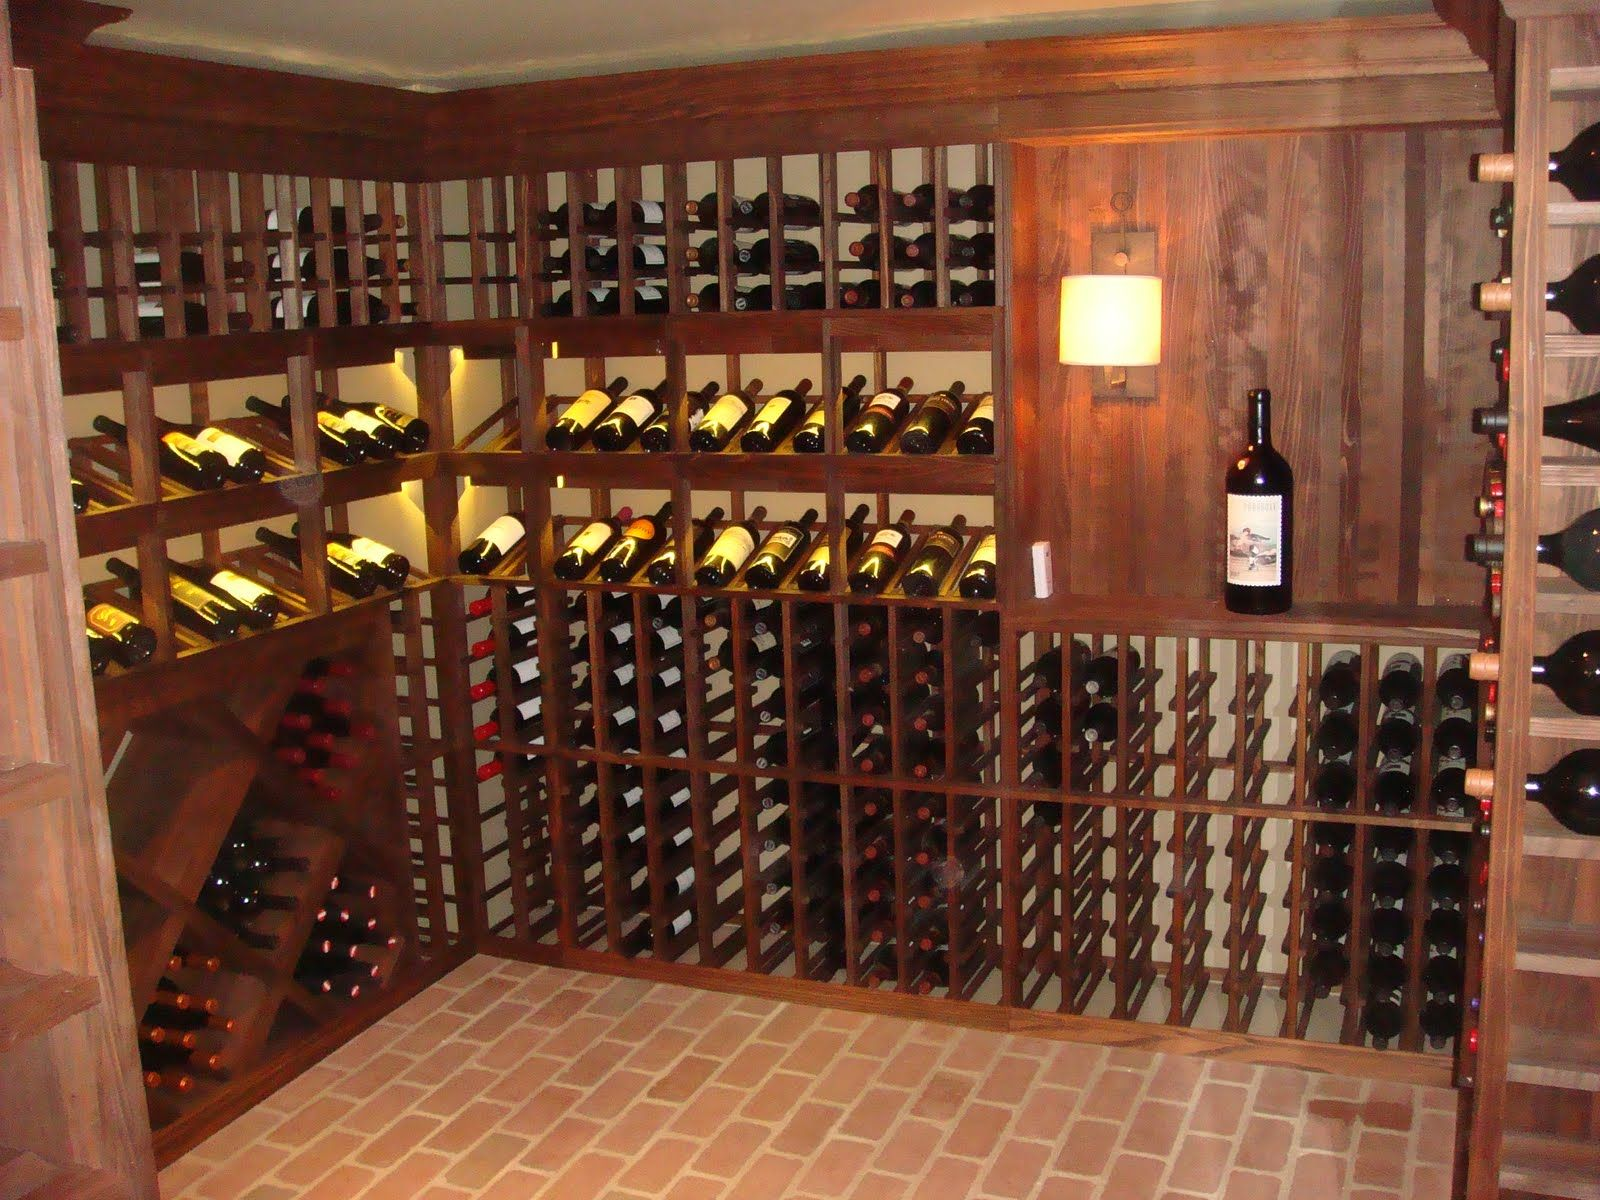 Basement Wine Cellar Ideas Charlotte Home Remodeling